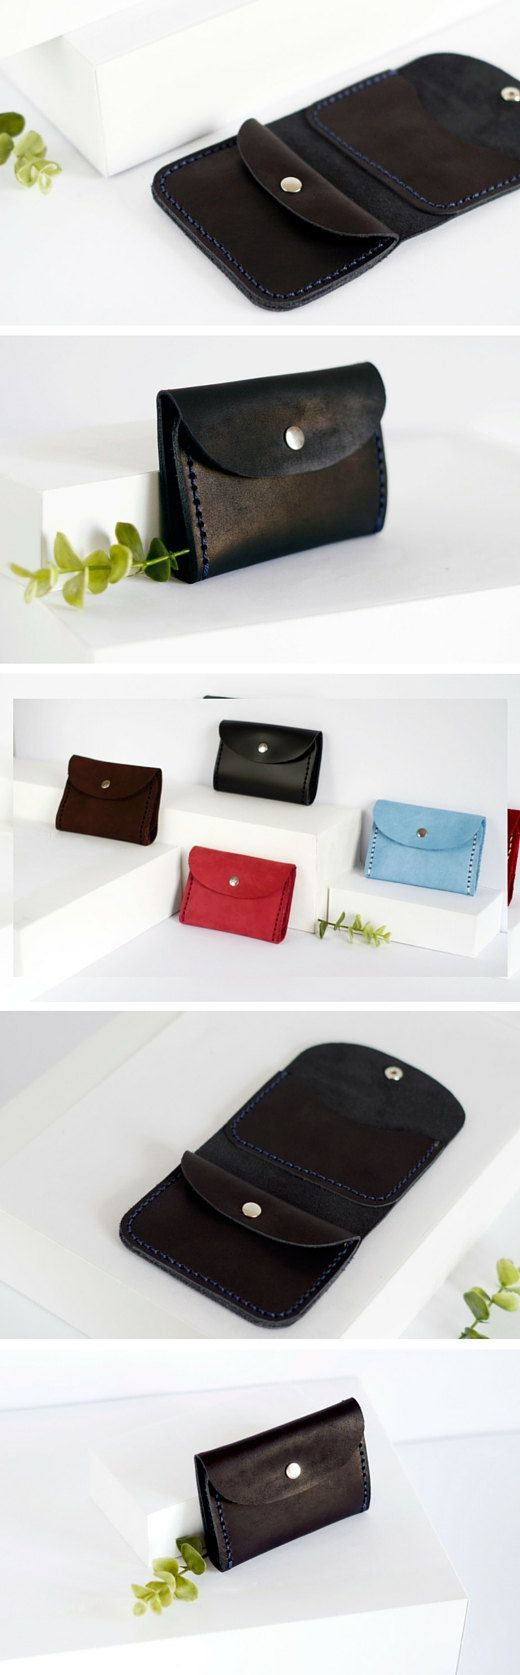 23 best ✶ Leather wallet ✶ images on Pinterest   Leather, Coins ...